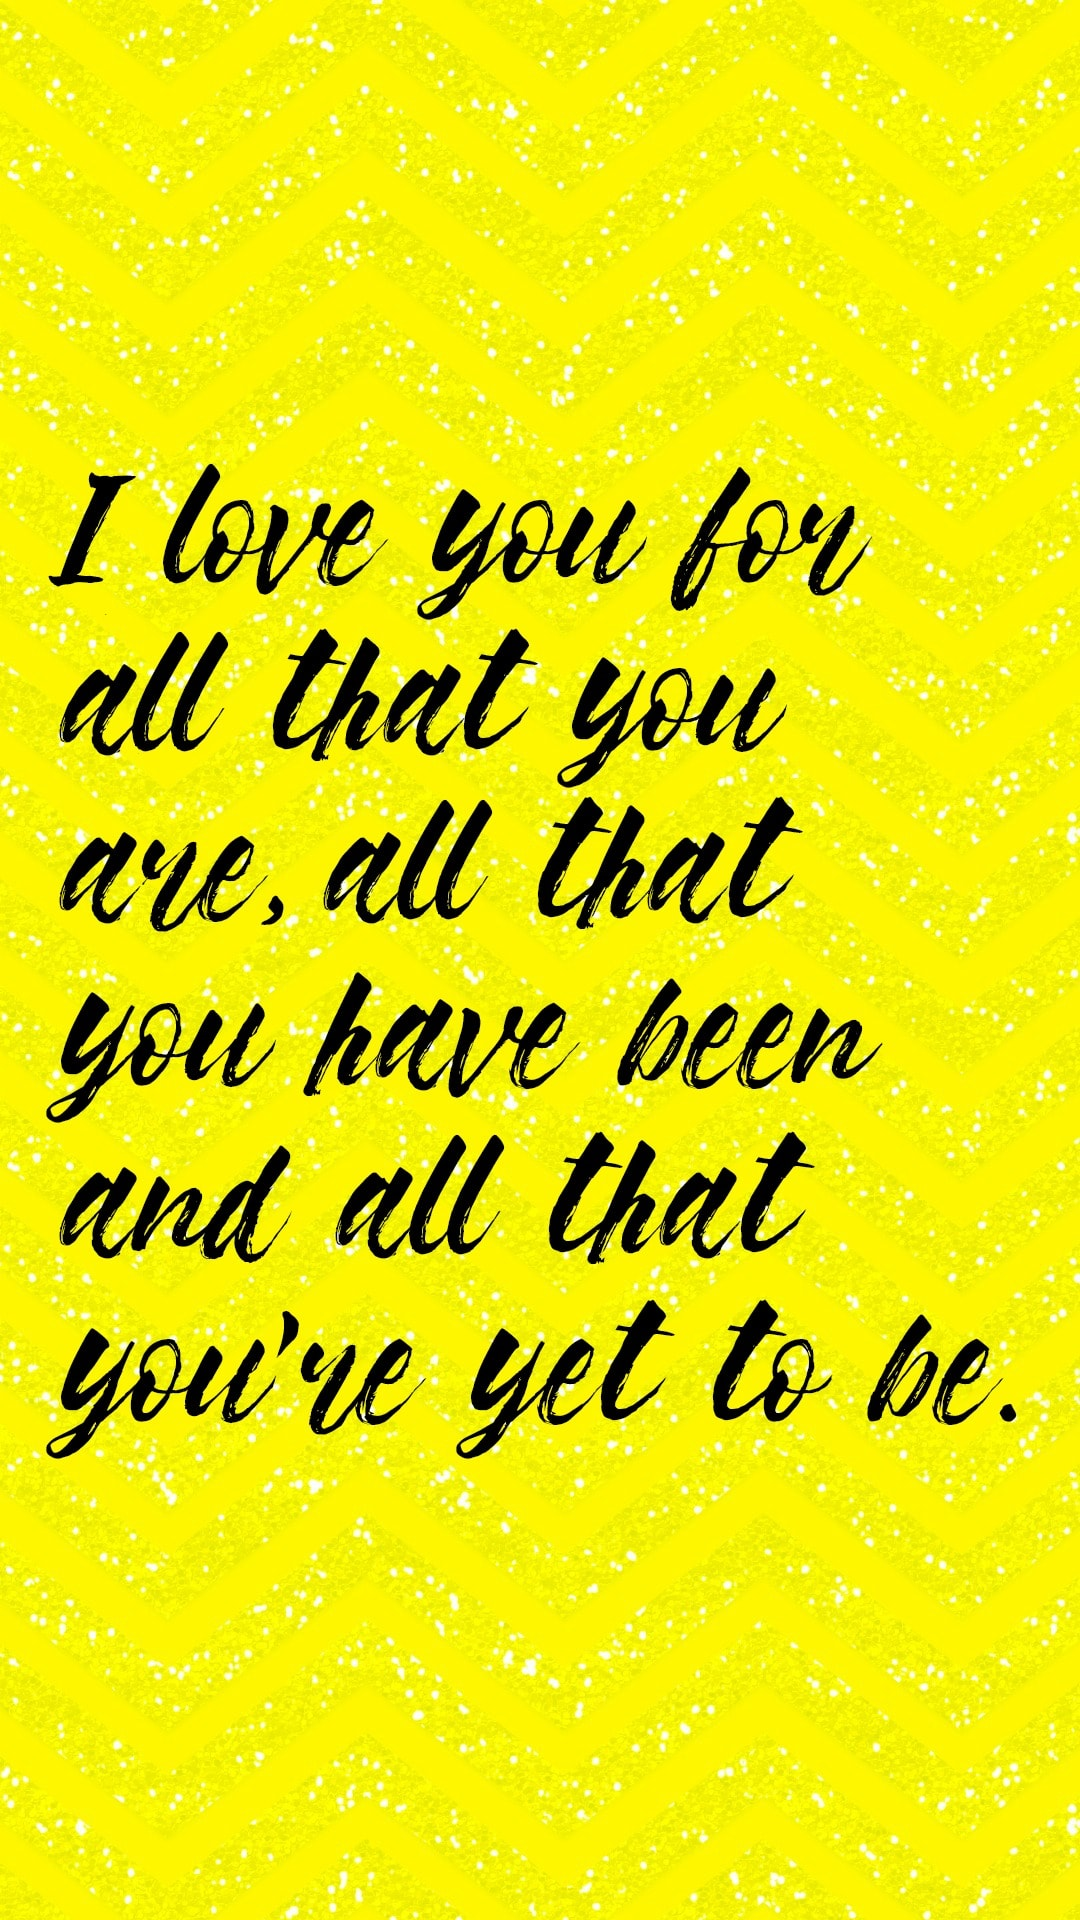 I love you for all that you are, all that you have been and all that you you're yet to be.